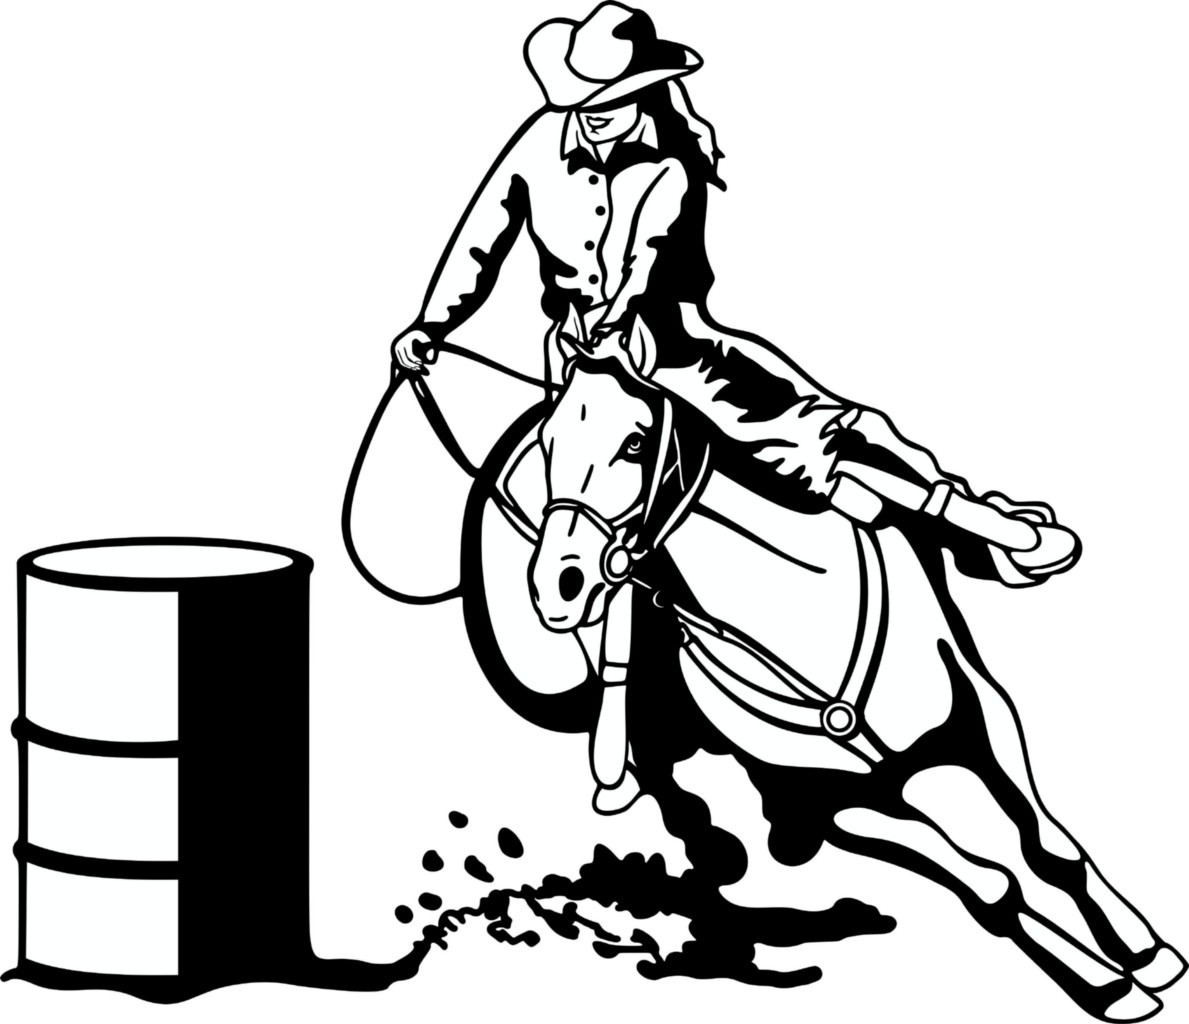 EQUESTRIAN Barrel Racing Vinyl Decal Sticker C